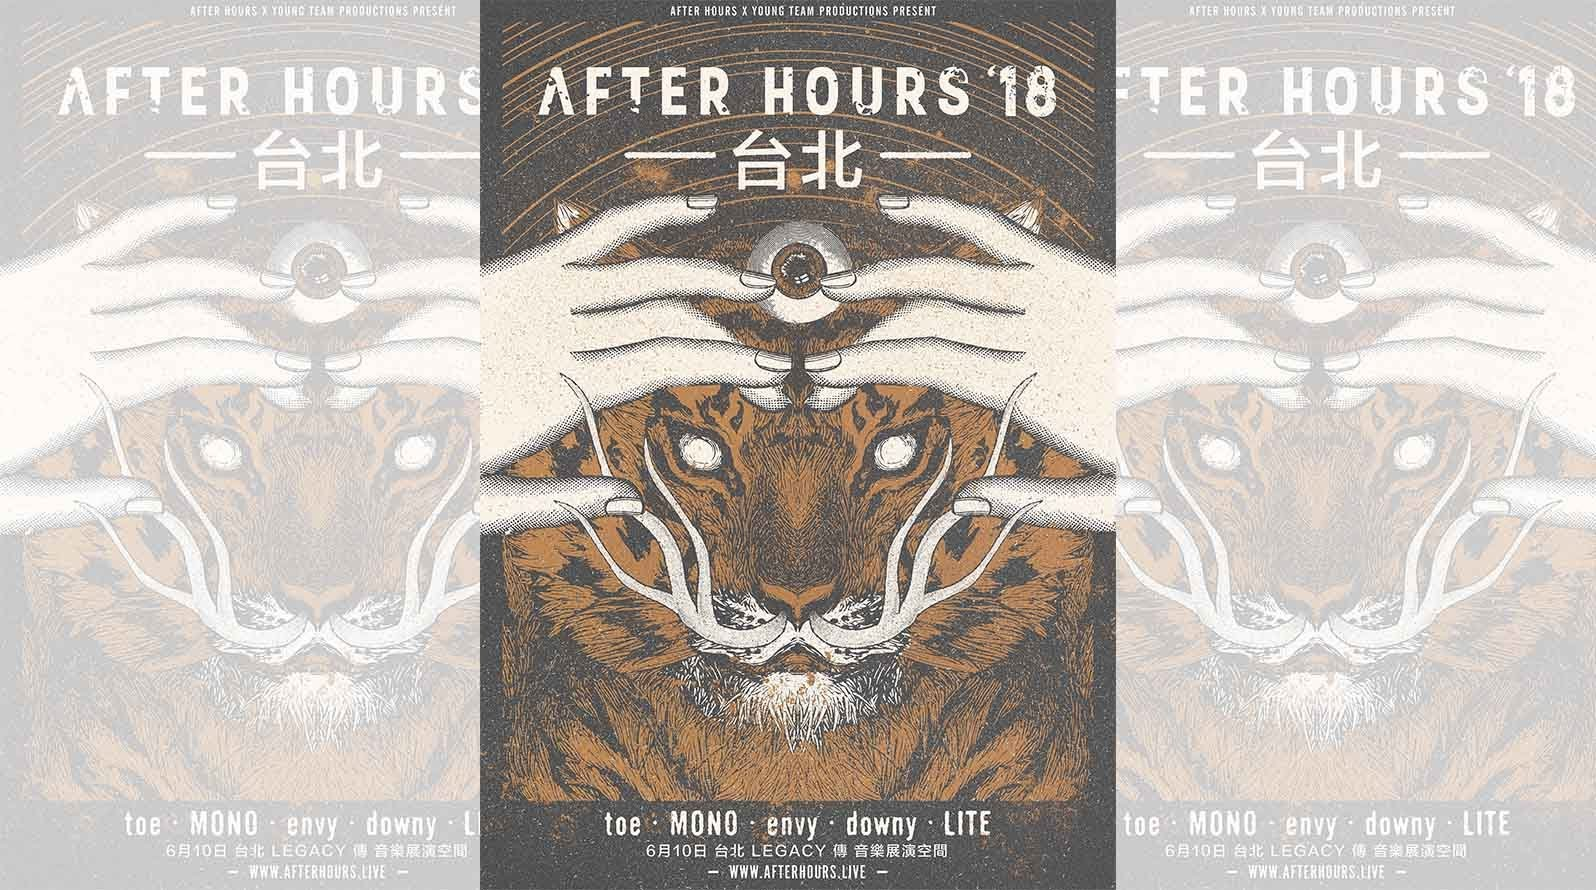 MONO、envy、downy 樂團策劃音樂祭「After Hours」 6月台北首度登場!